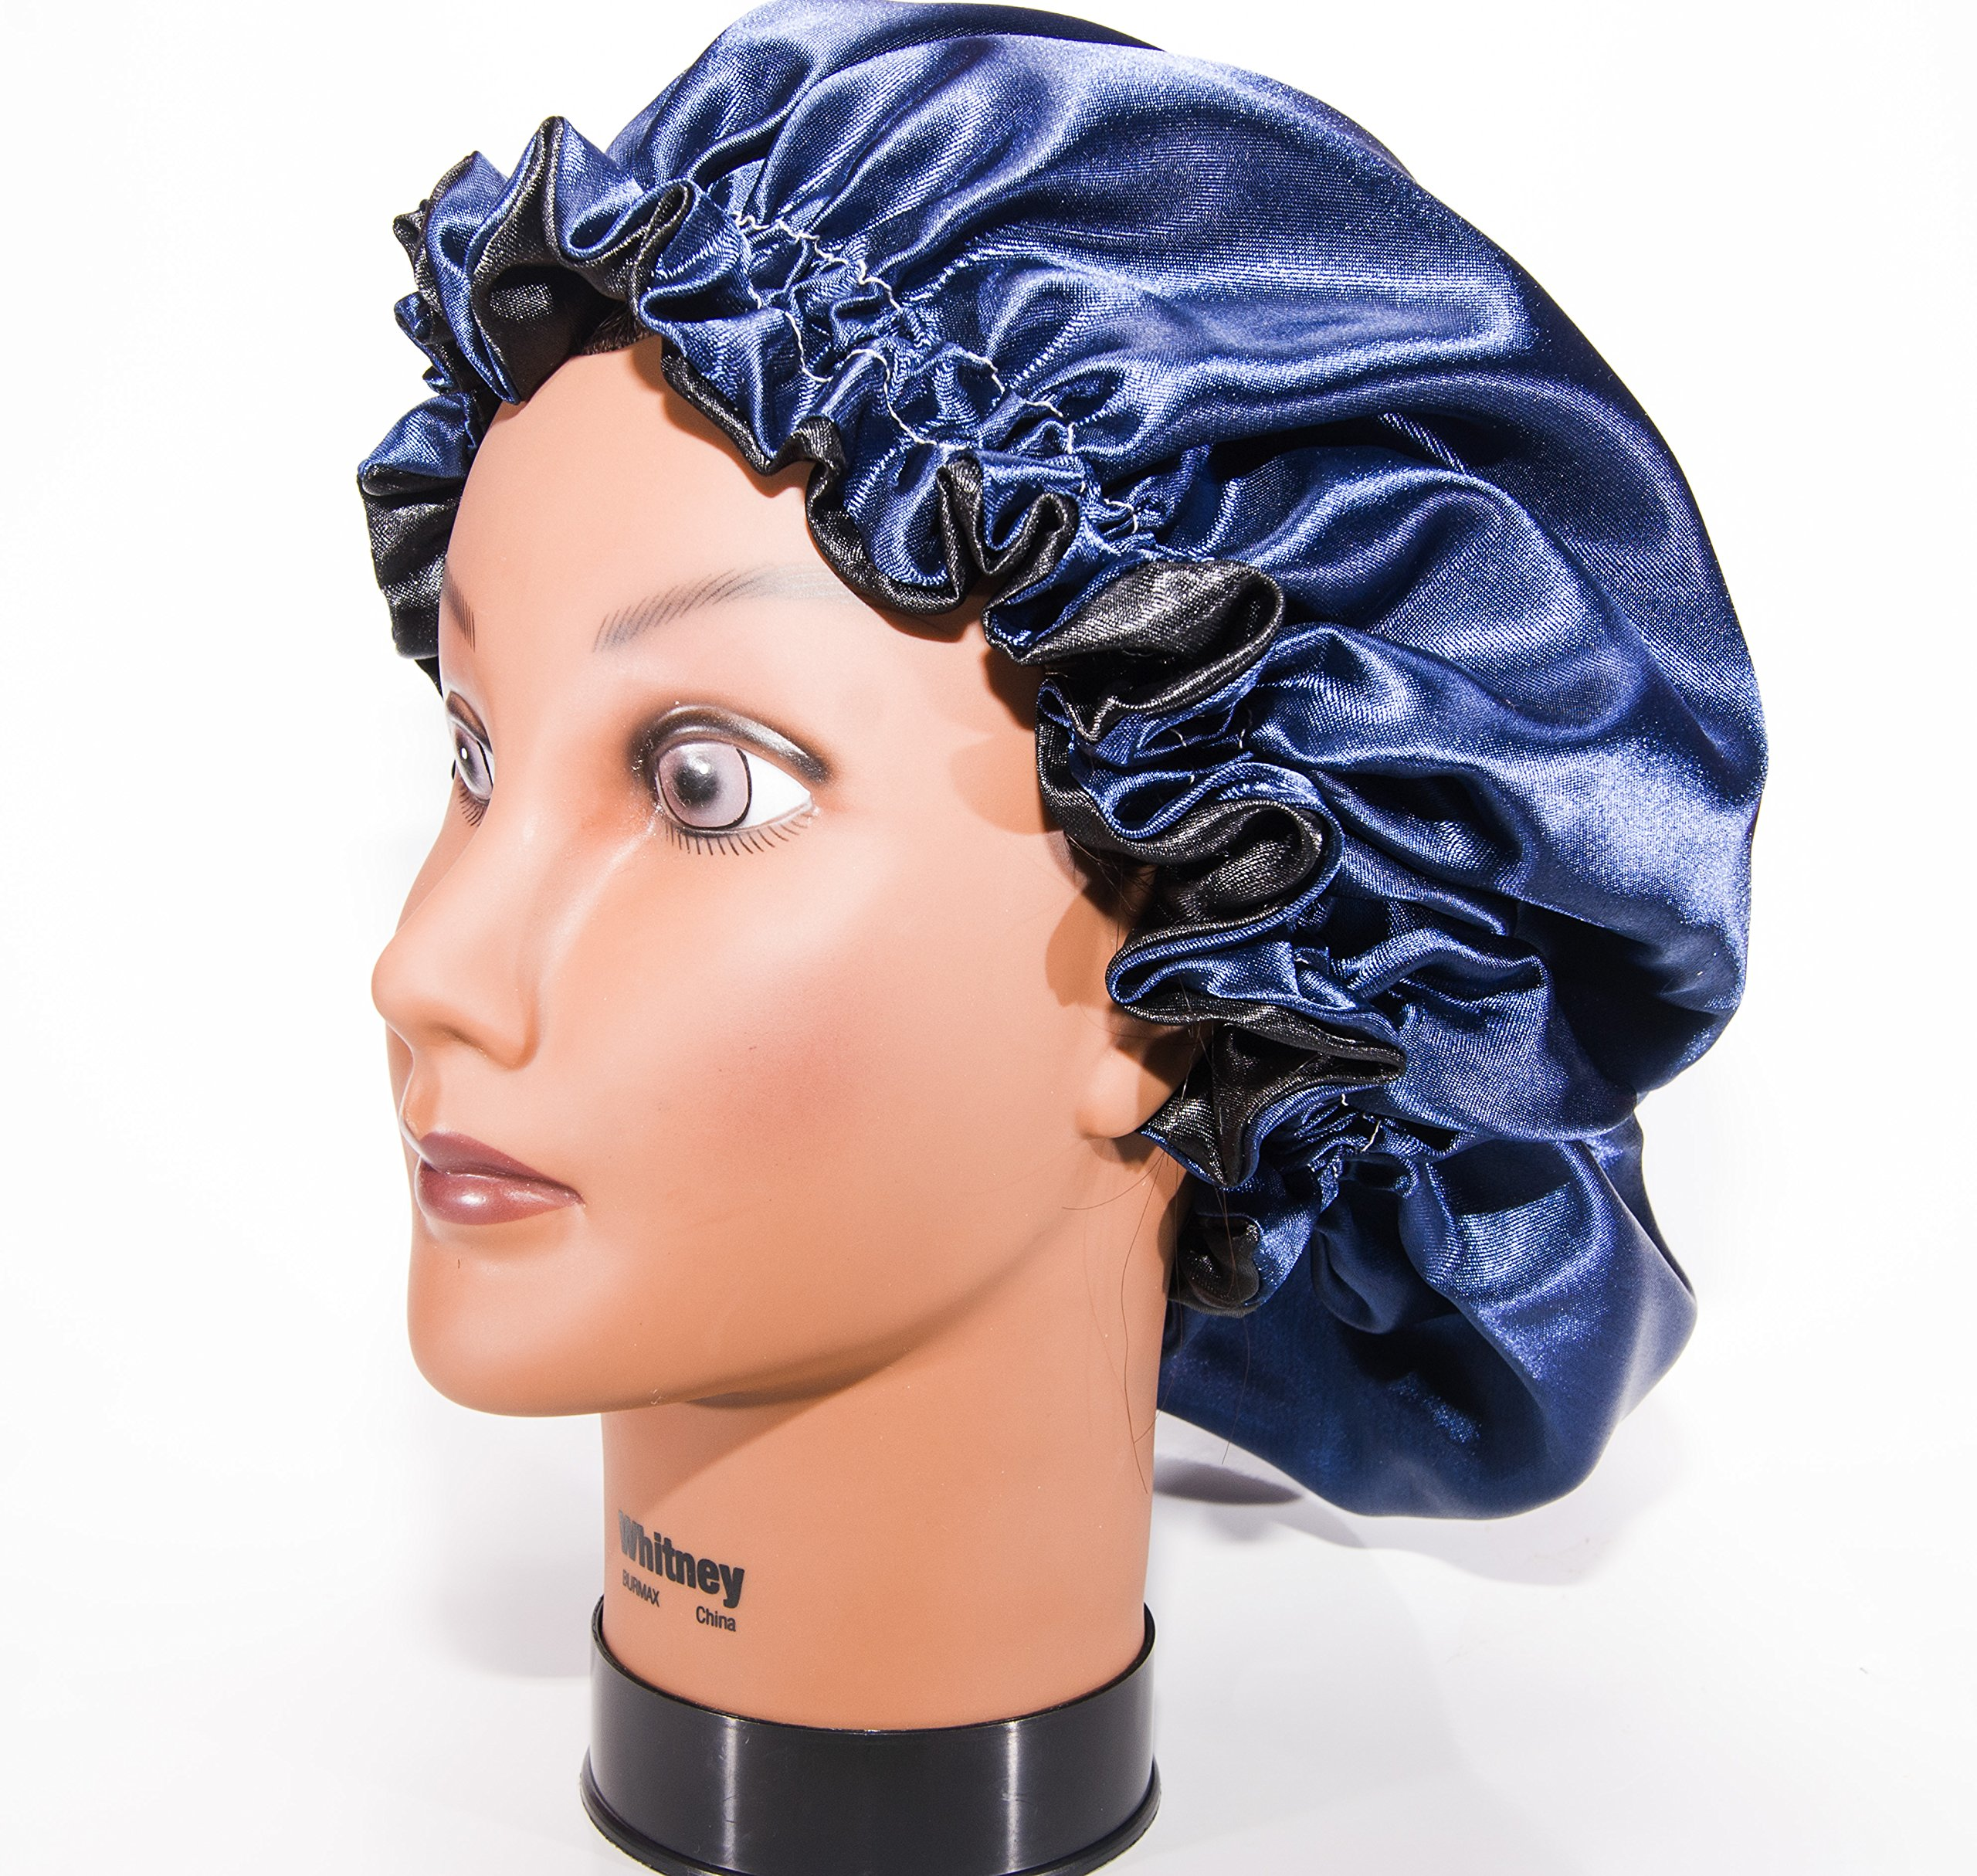 Large, NAVY BLUE 22'' Reversible Luxuries Pure Satin Hair Bonnet for Women, Men, Kids & Teens Used for Dry, Damaged, Colored Safe For All Hair Types - Anti Aging Hair Care